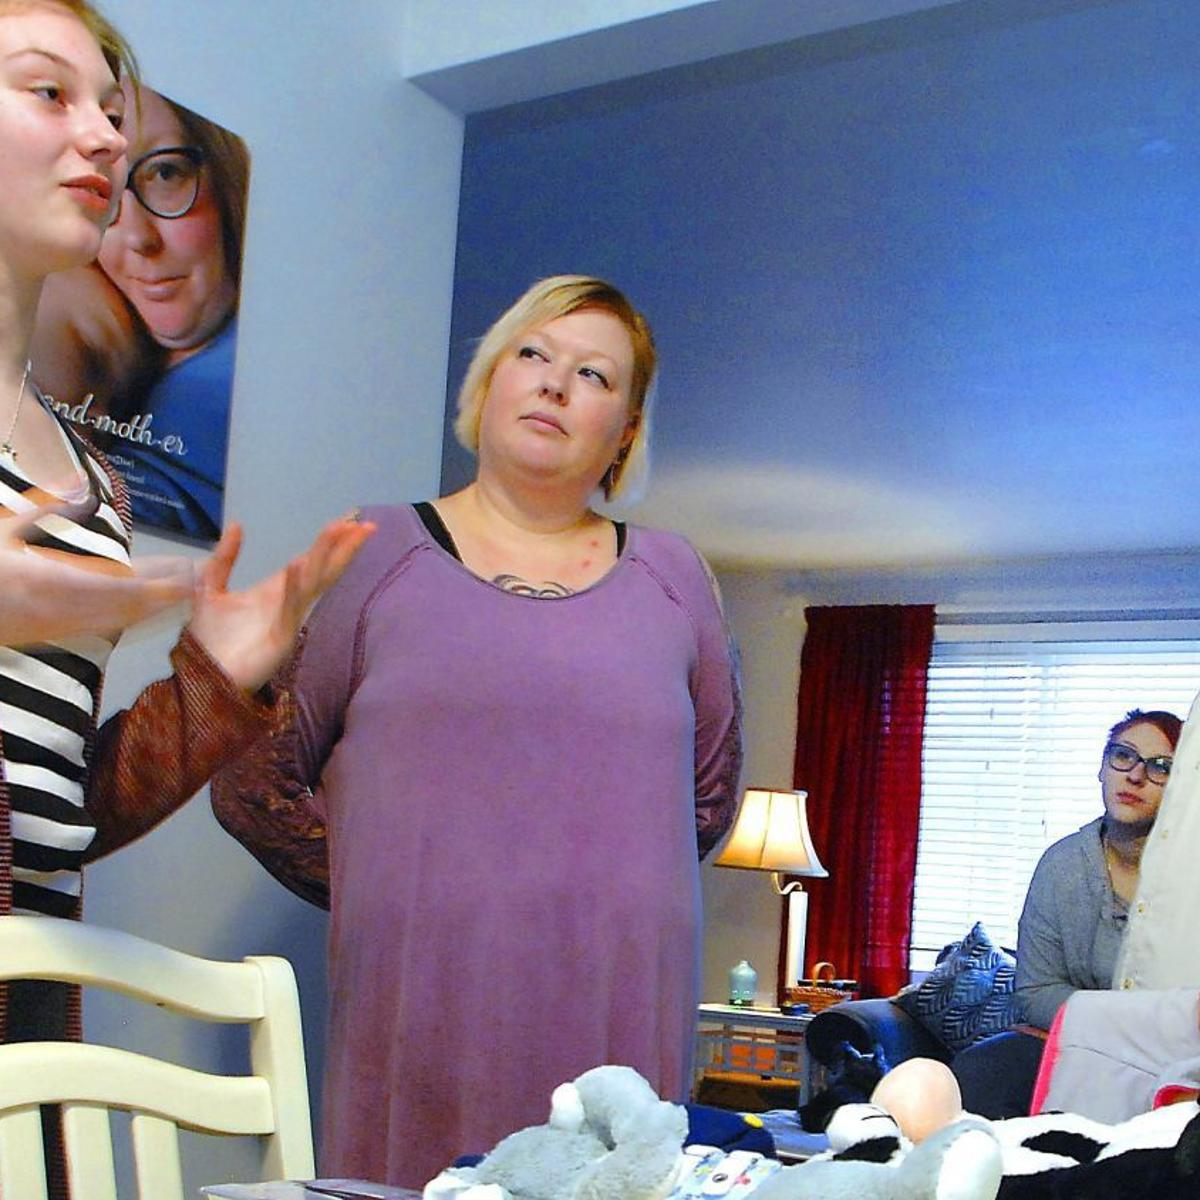 Hold your head high': Danvers girl, 13, has new-wave